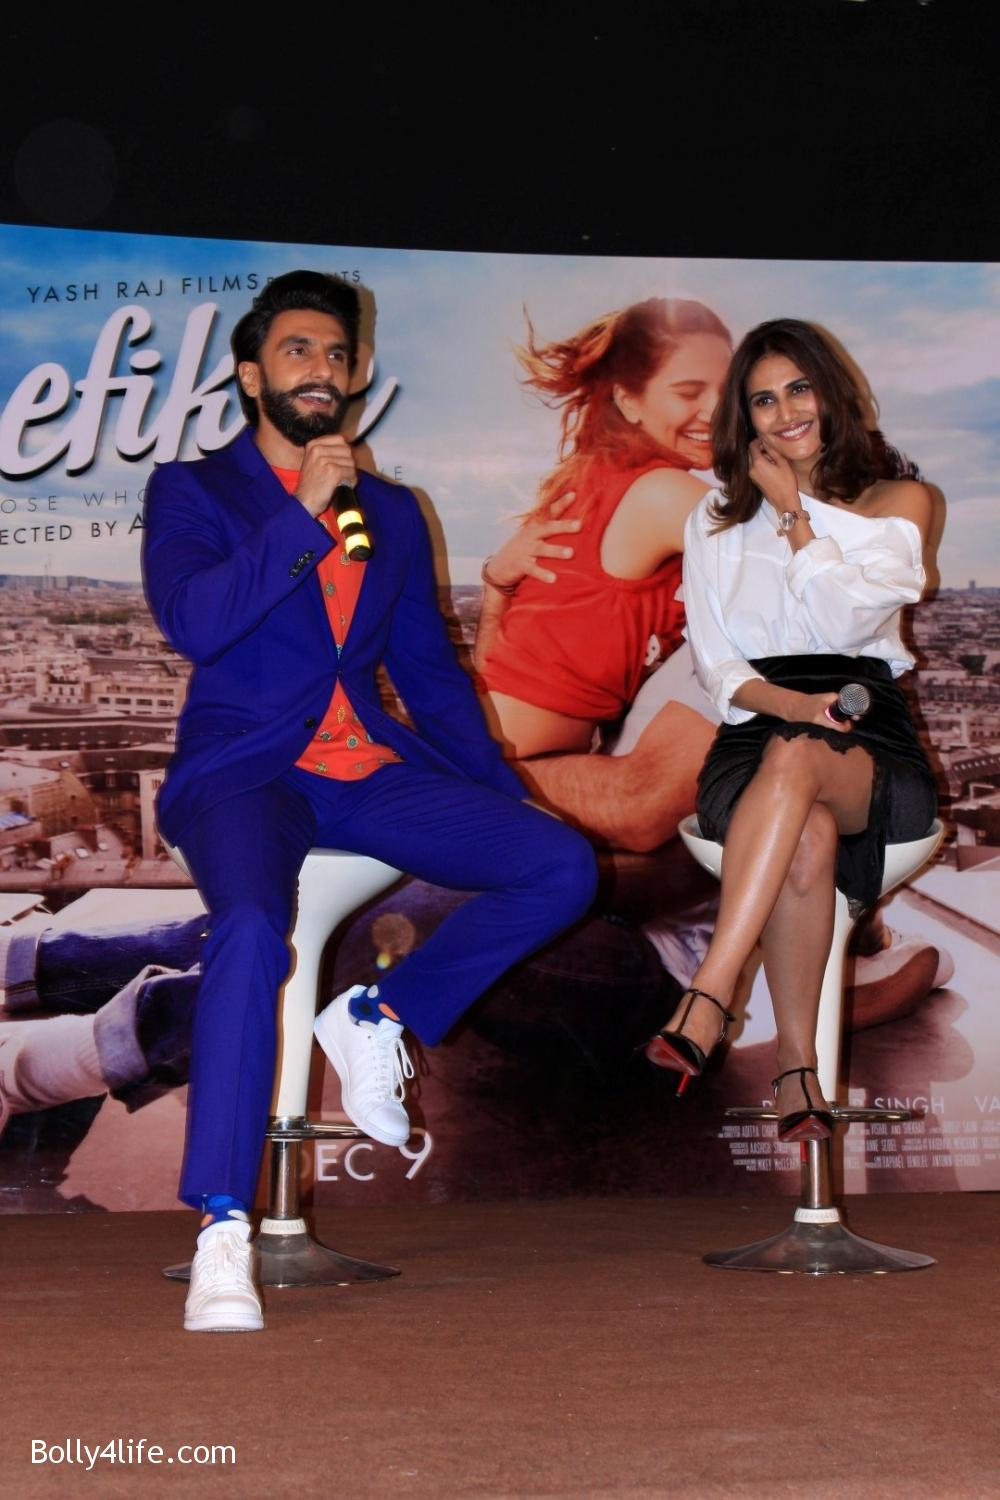 Ranveer-Singh-and-Vaani-Kapoor-during-the-song-launch-You-And-Me-from-film-Befikre-17.jpg